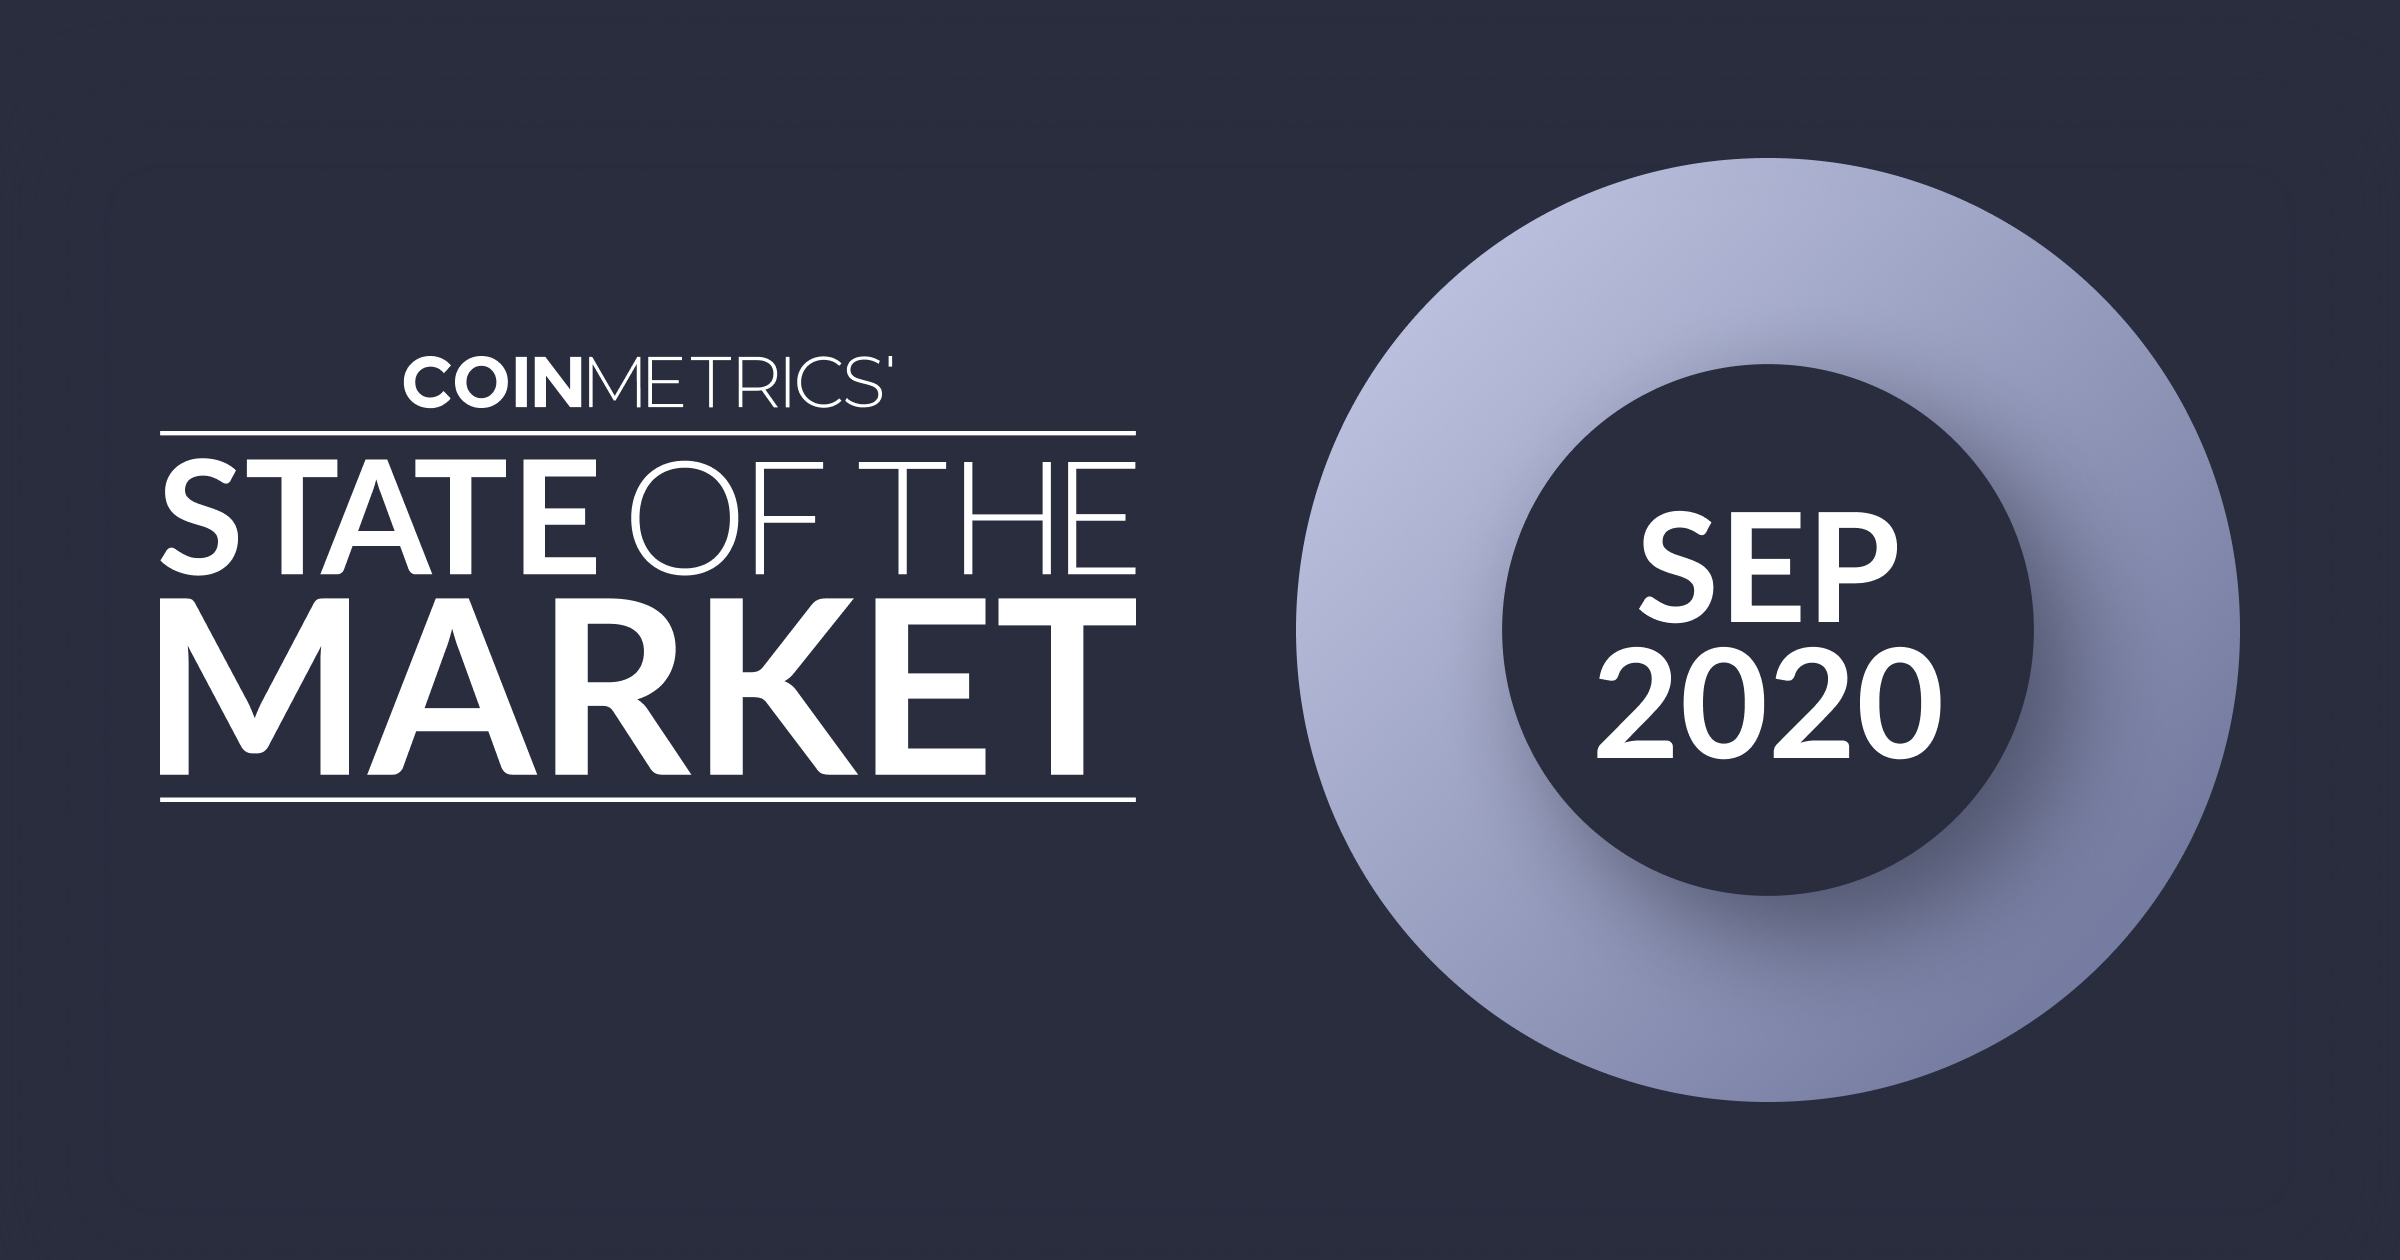 State of the Market - Sep 2020